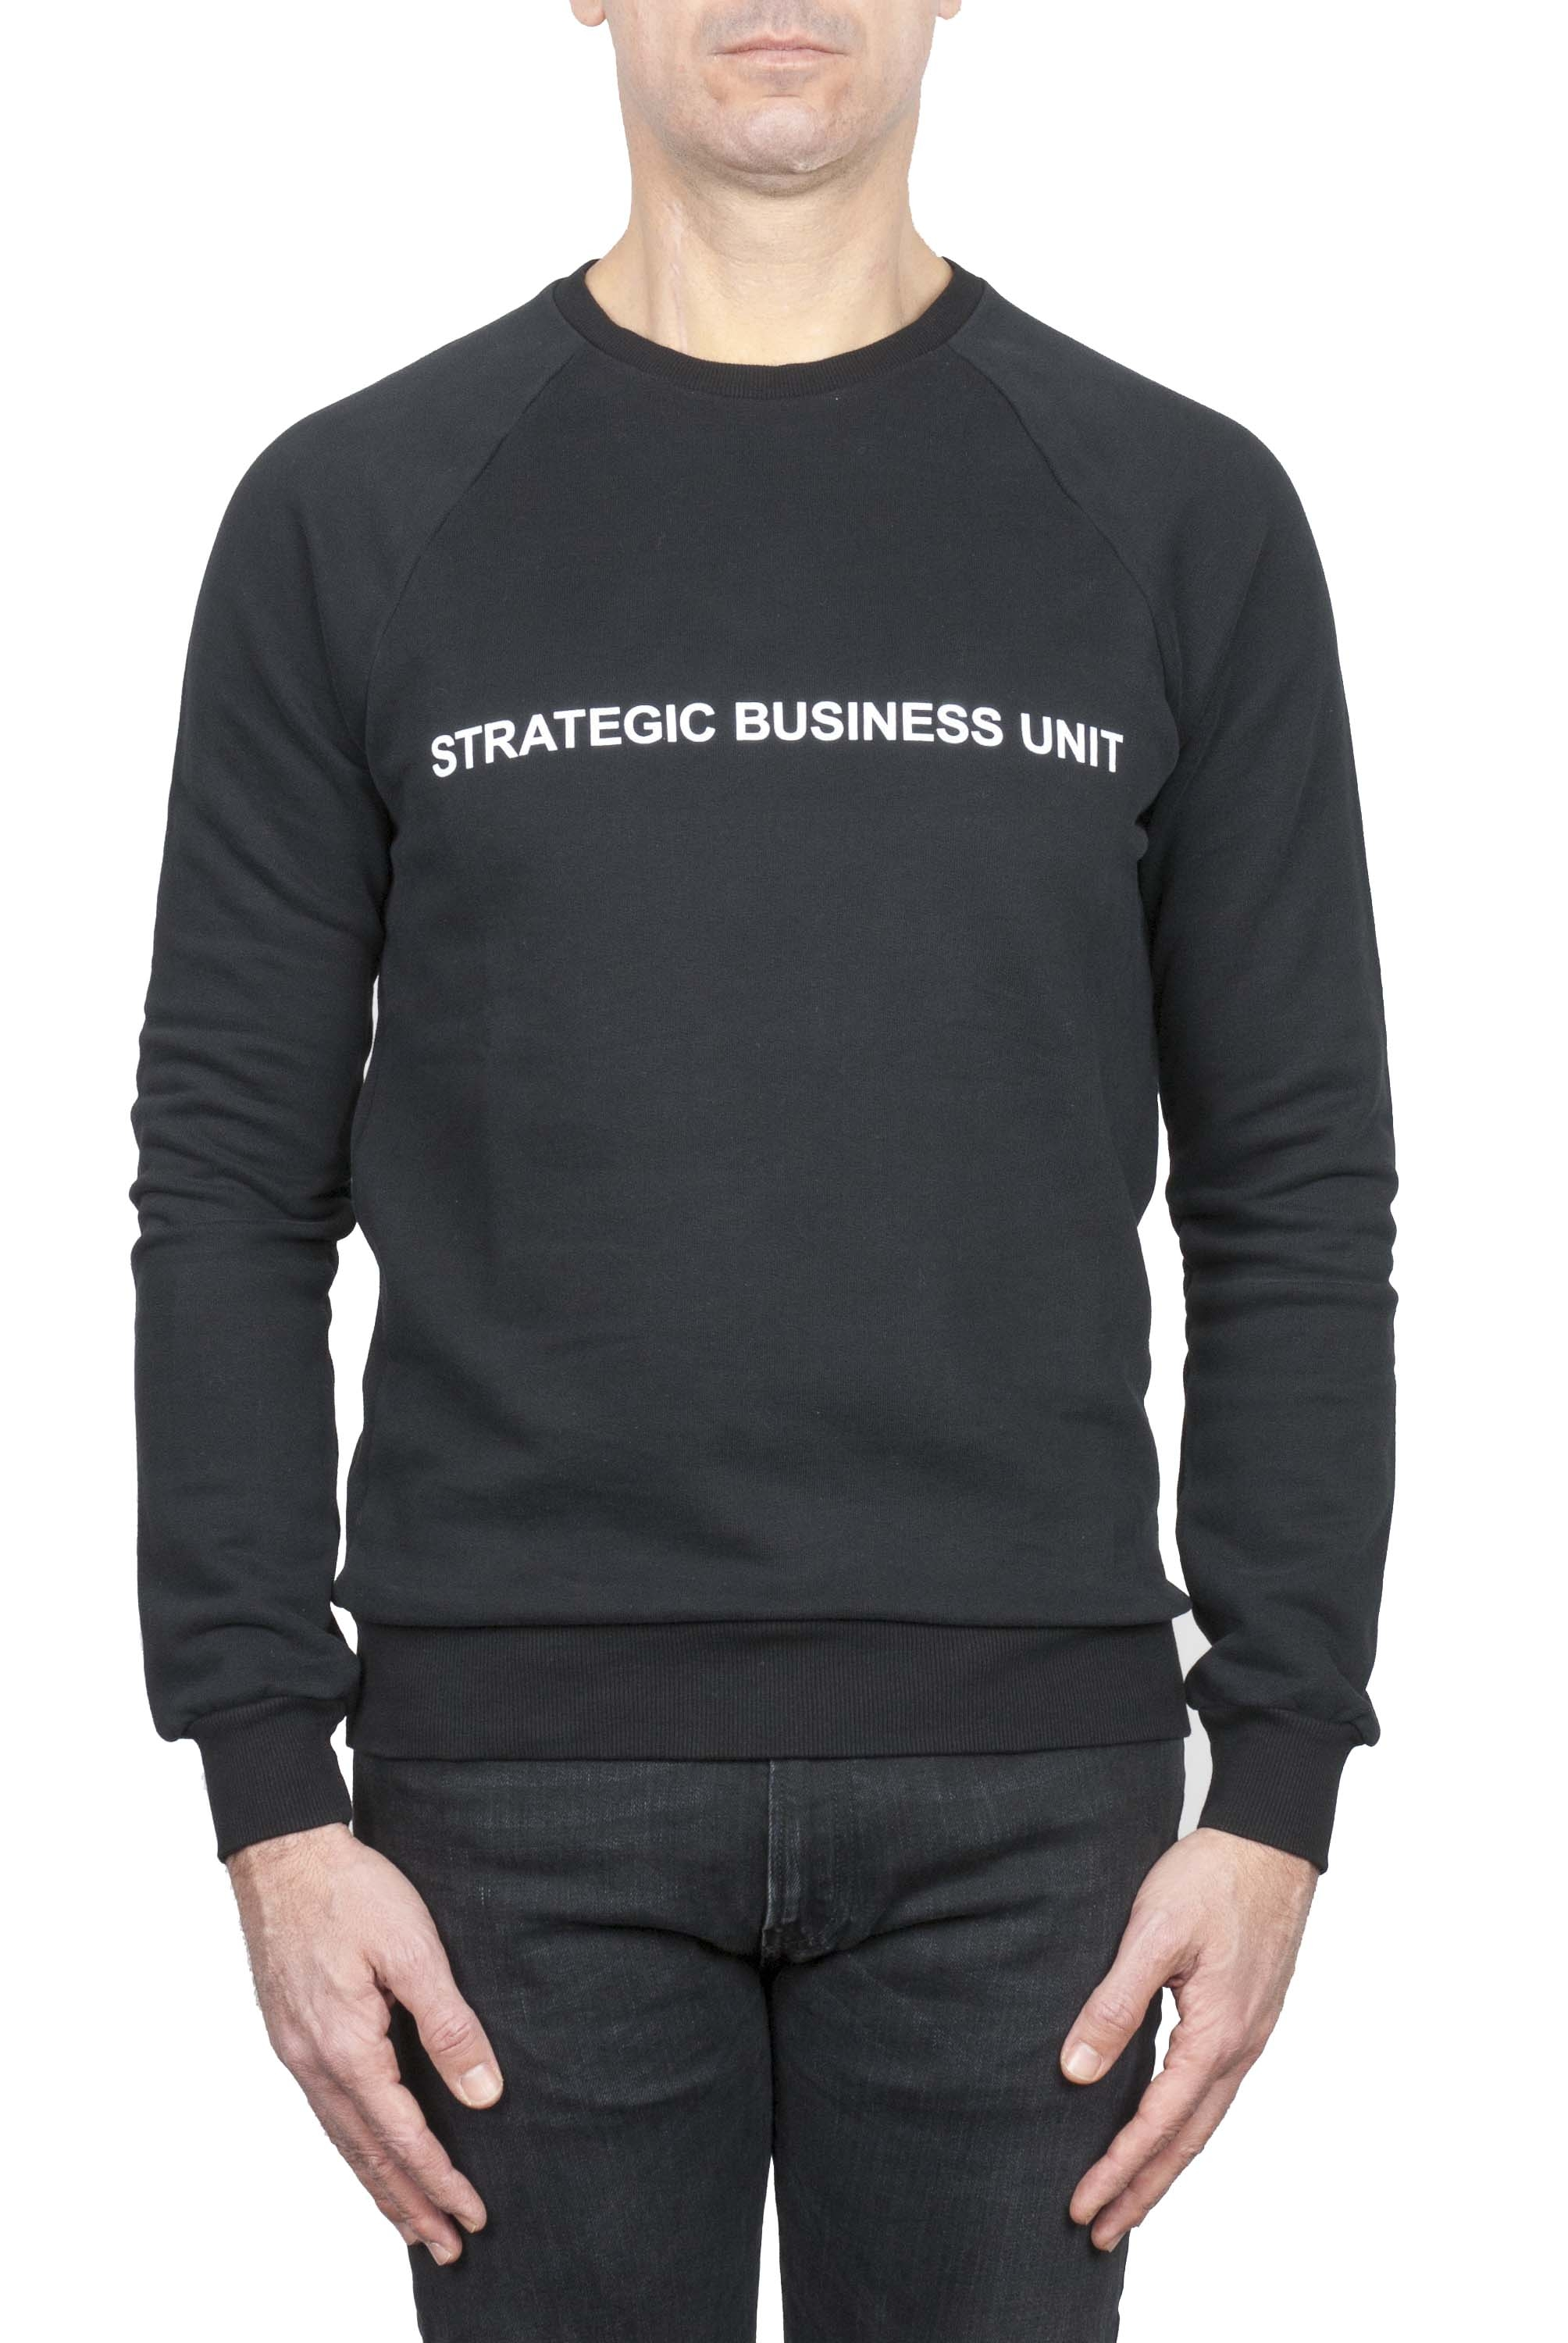 SBU 01467_19AW Sweat à col rond imprimé logo Strategic Business Unit 01